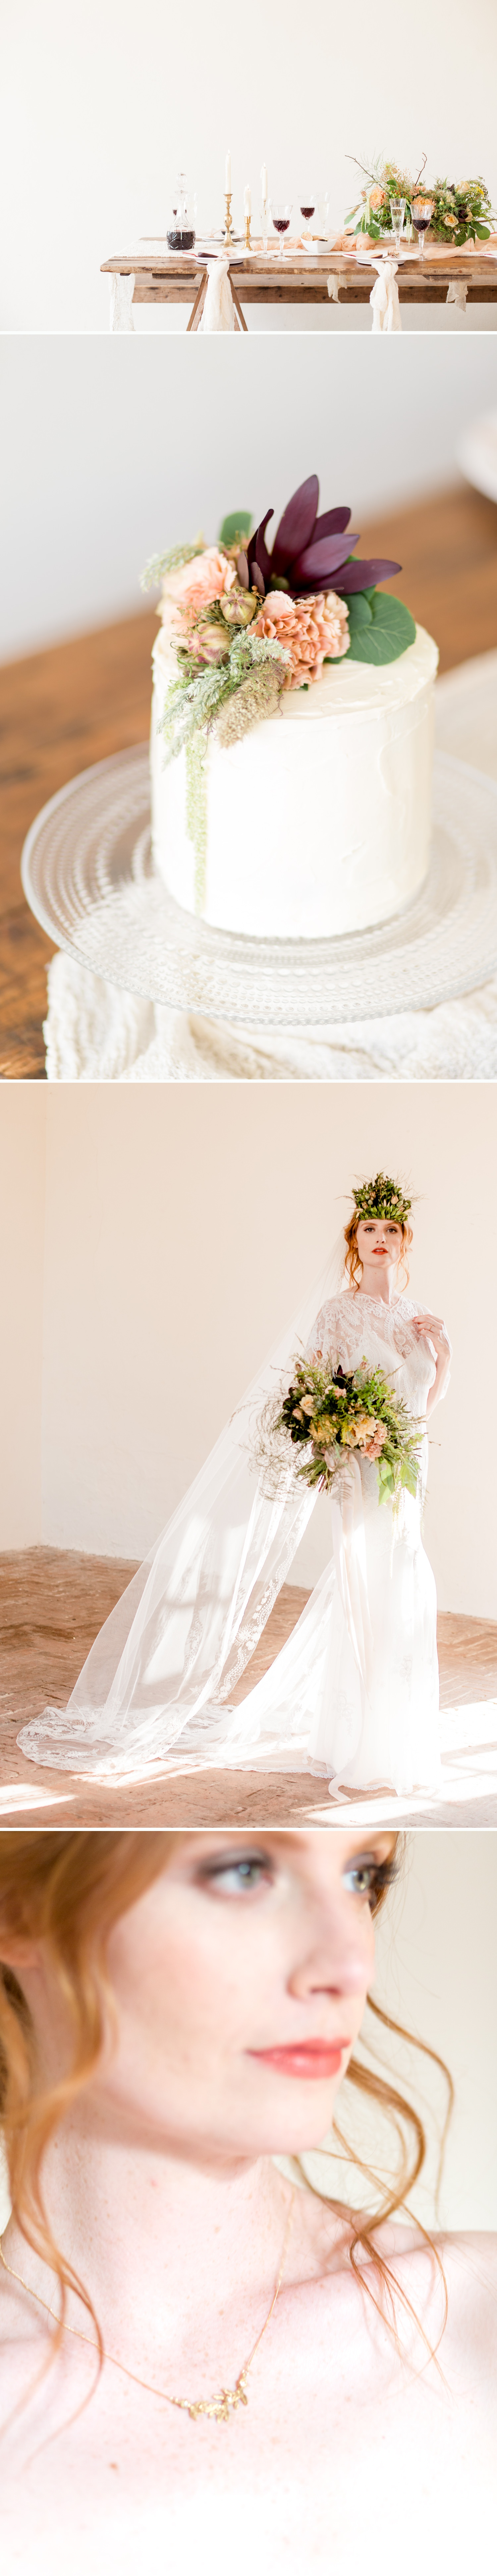 West Sussex Wedding Photographer - understated luxury for a bridal shoot at Bignor Park